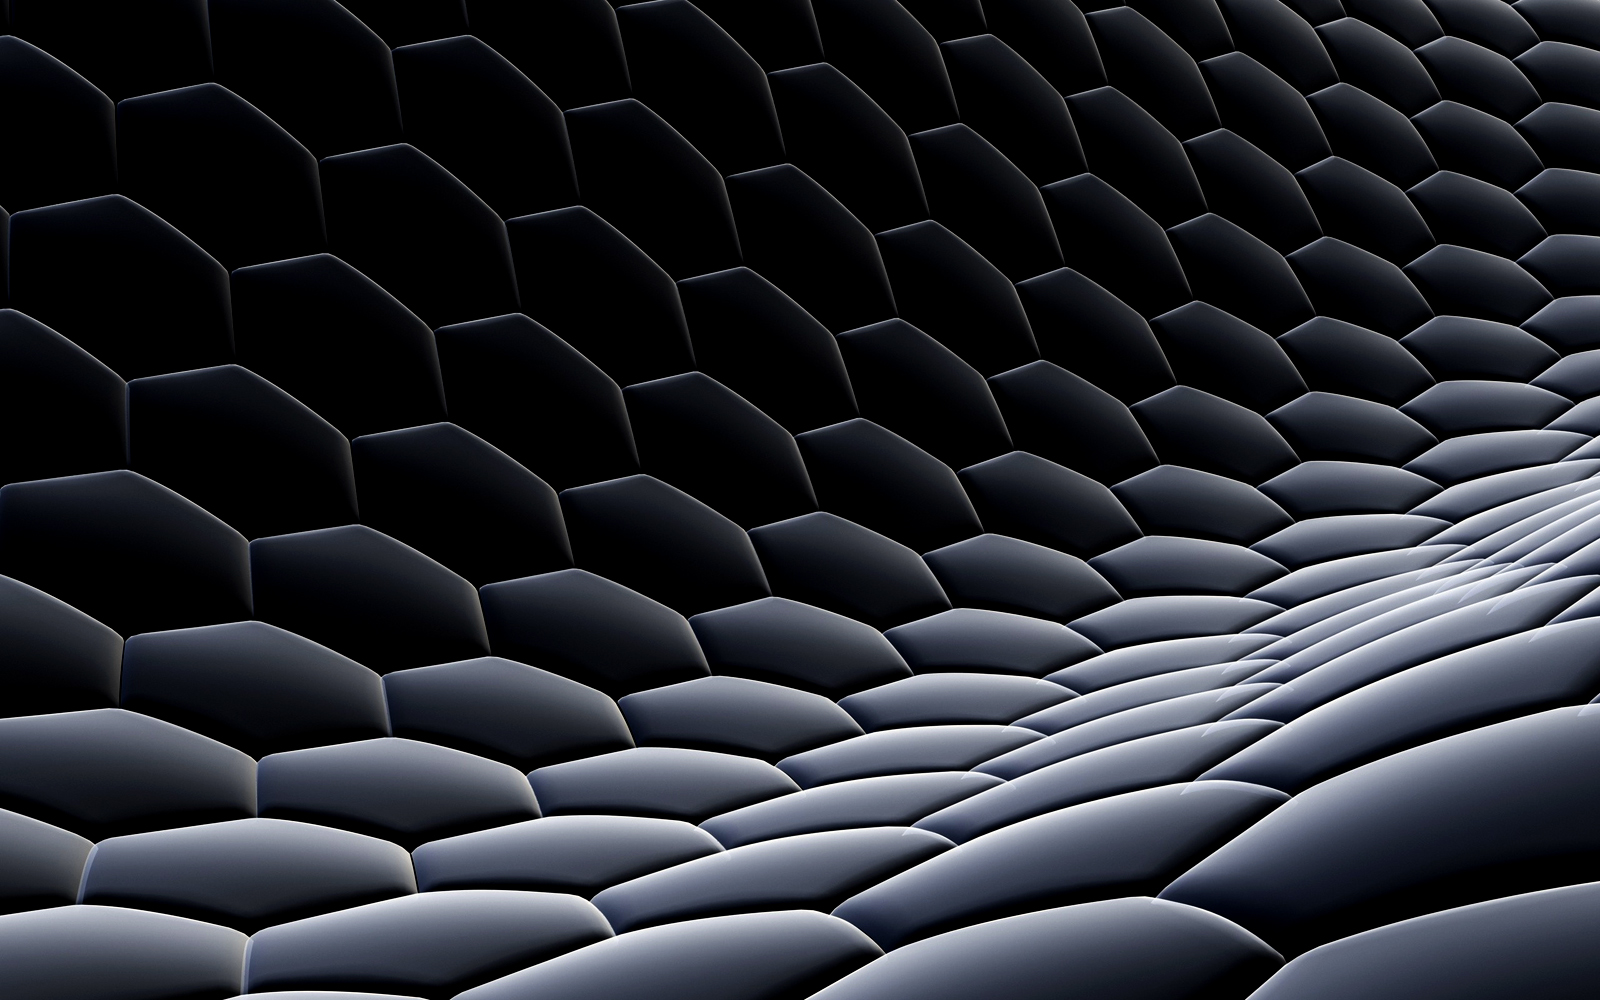 3D Hexagonal Dark HD Wallpapers Widescreen for Desktop PC